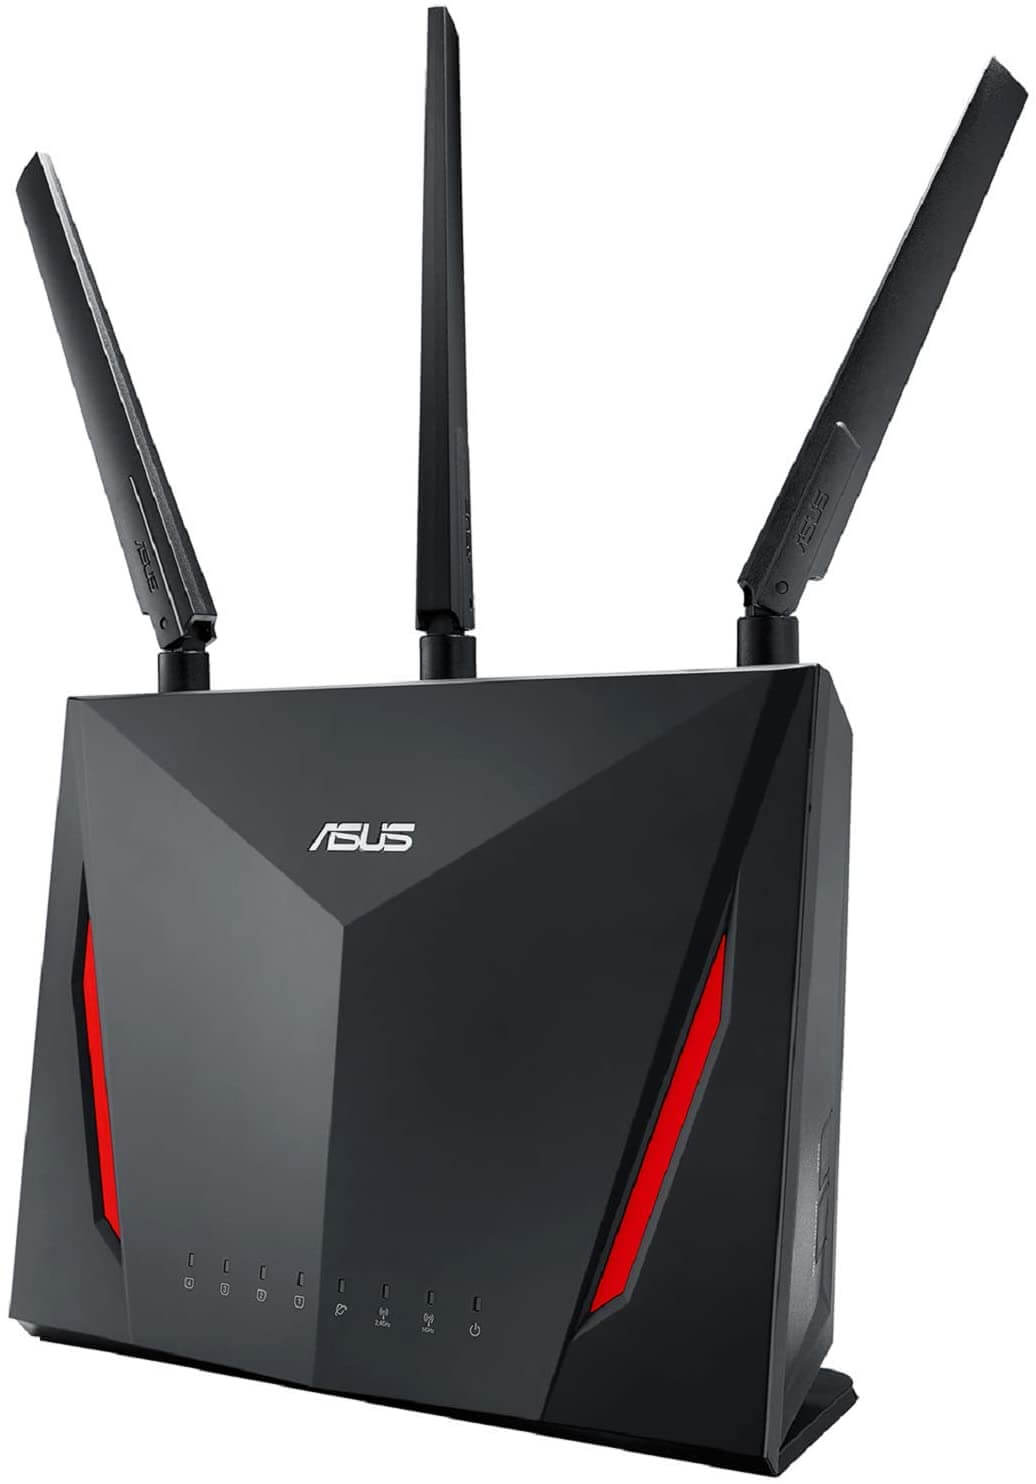 ASUS AC2900 WiFi Wireless Router